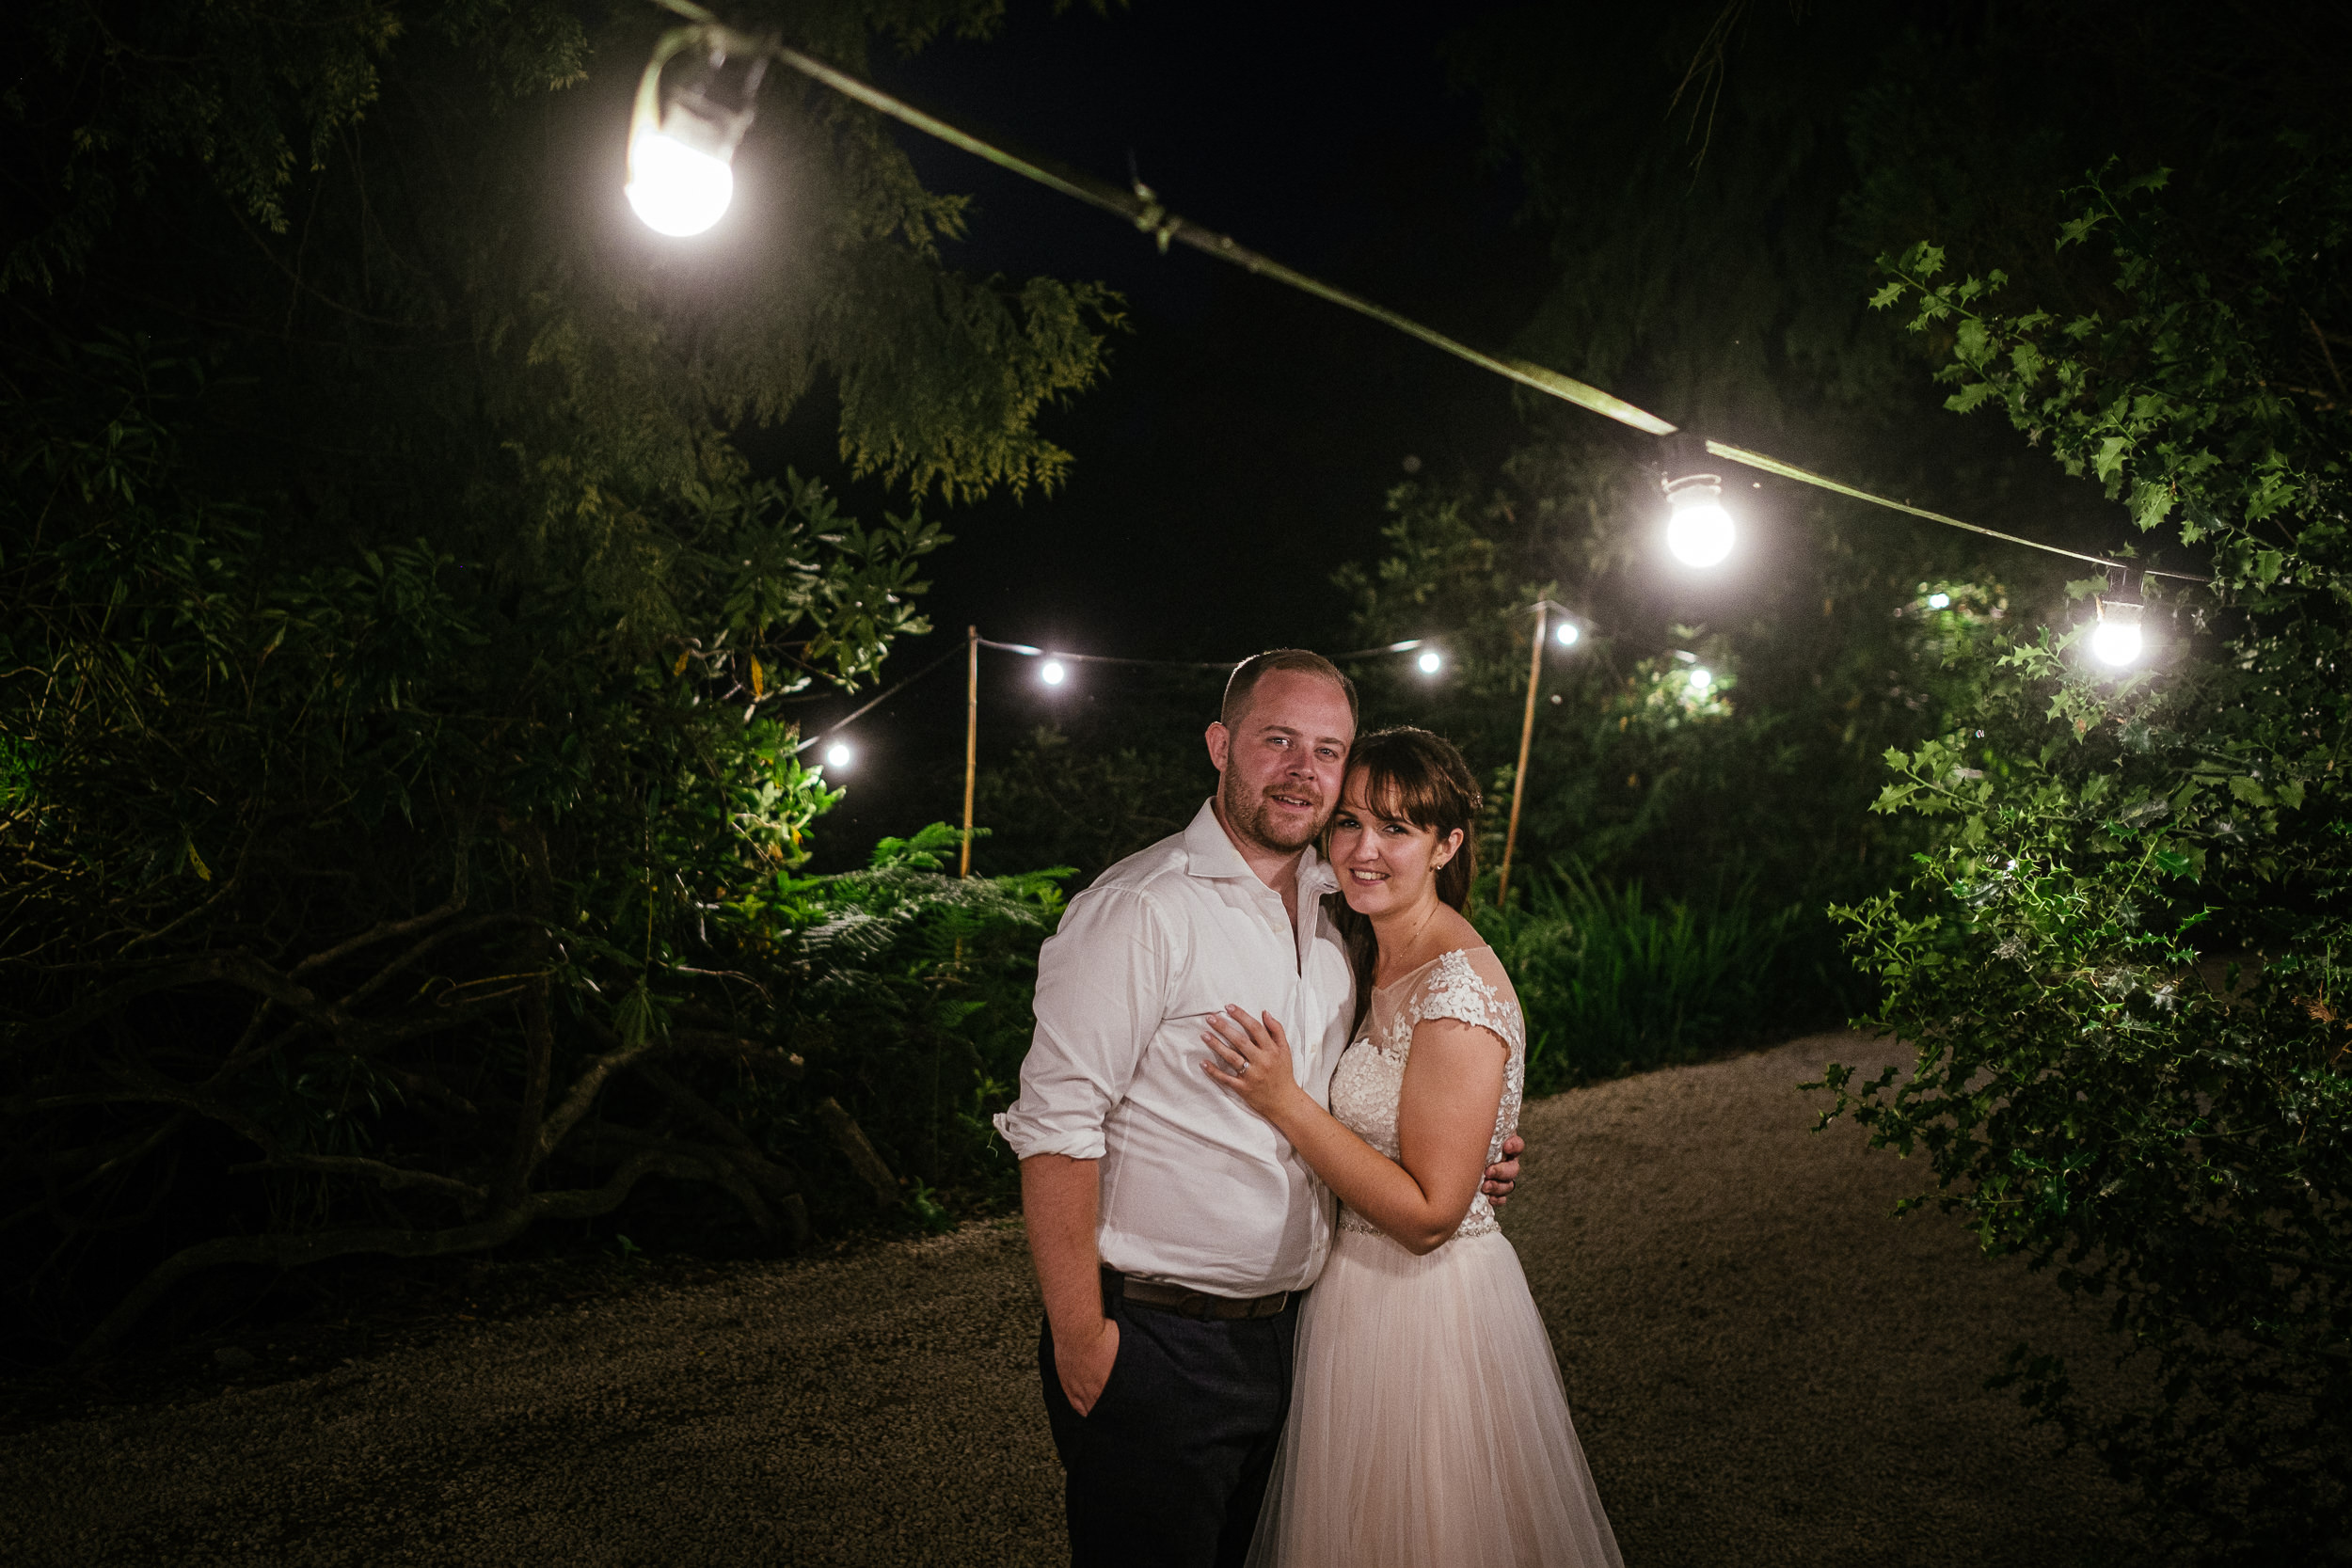 bride and groom embracing under lightbulbs and smiling at camera at ballybeg house wicklow